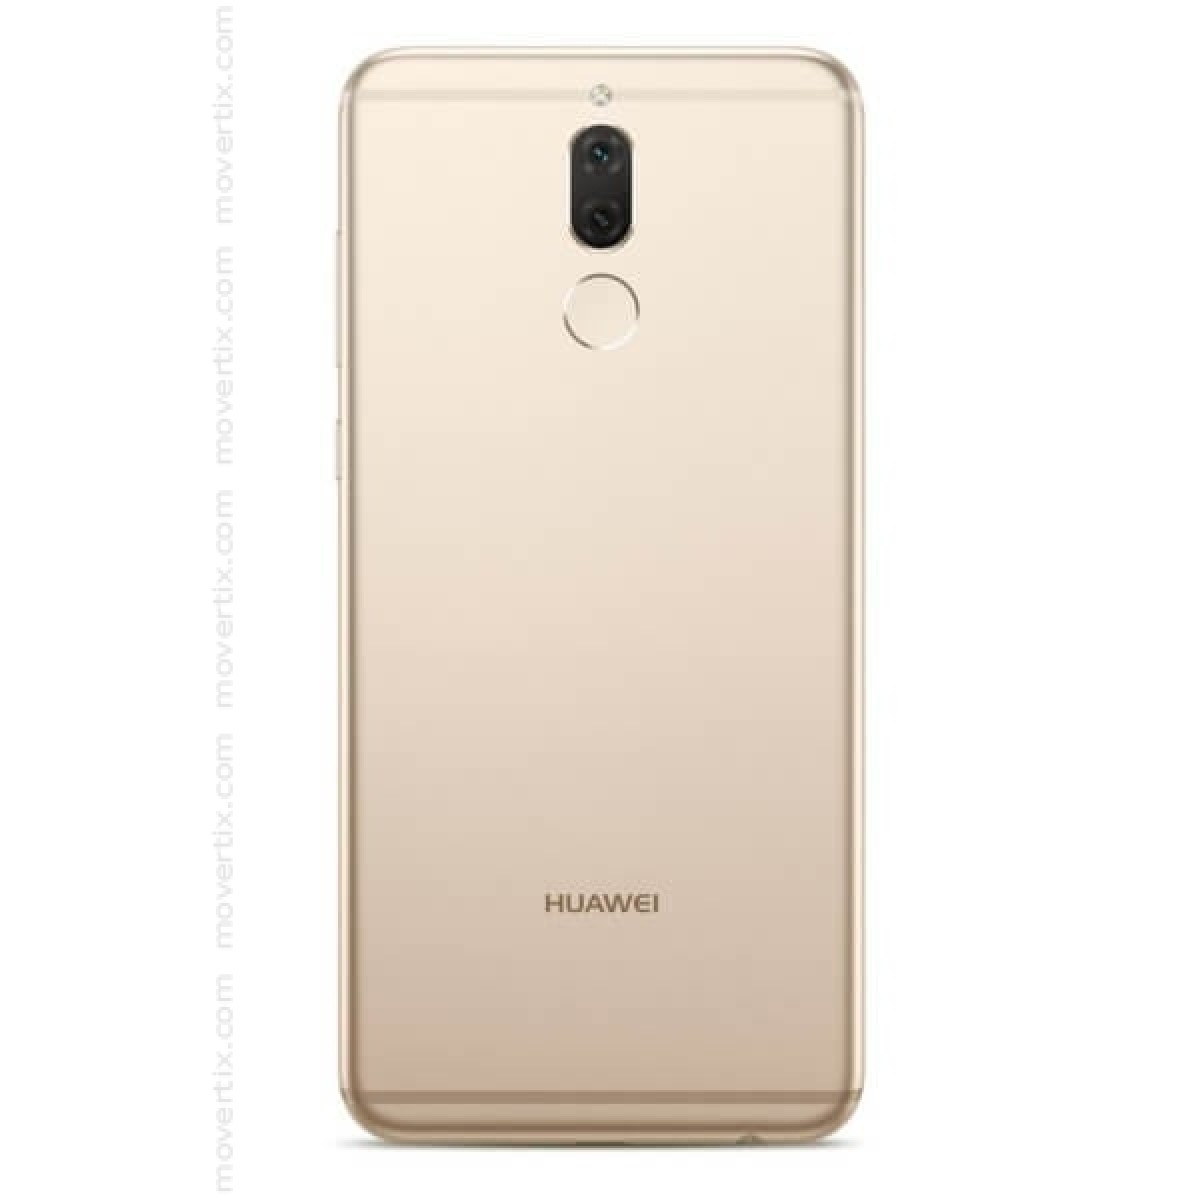 huawei - photo #47